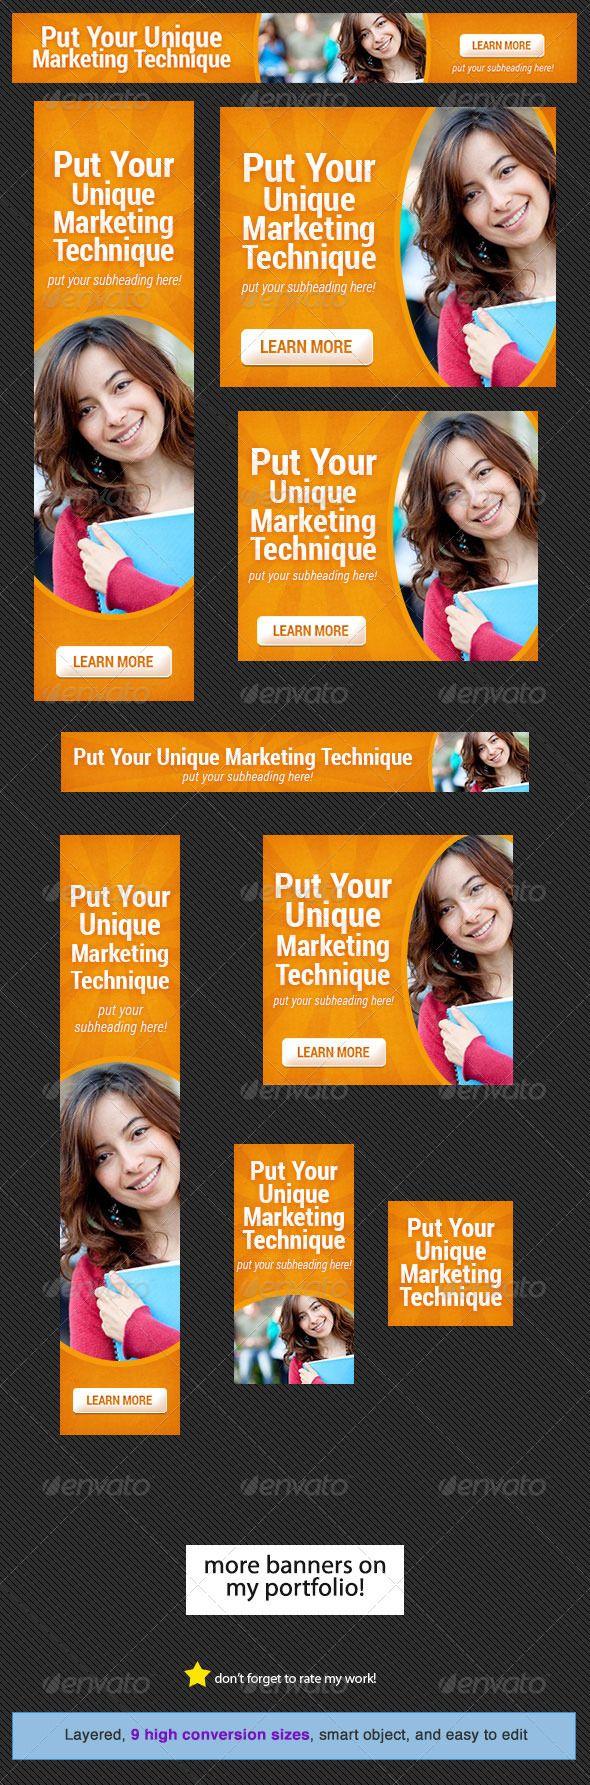 Corporate Web Banner Design Template PSD | Buy and Download: http://graphicriver.net/item/corporate-web-banner-design-template-13/4567046?WT.ac=category_thumb&WT.z_author=admiral_adictus&ref=ksioks